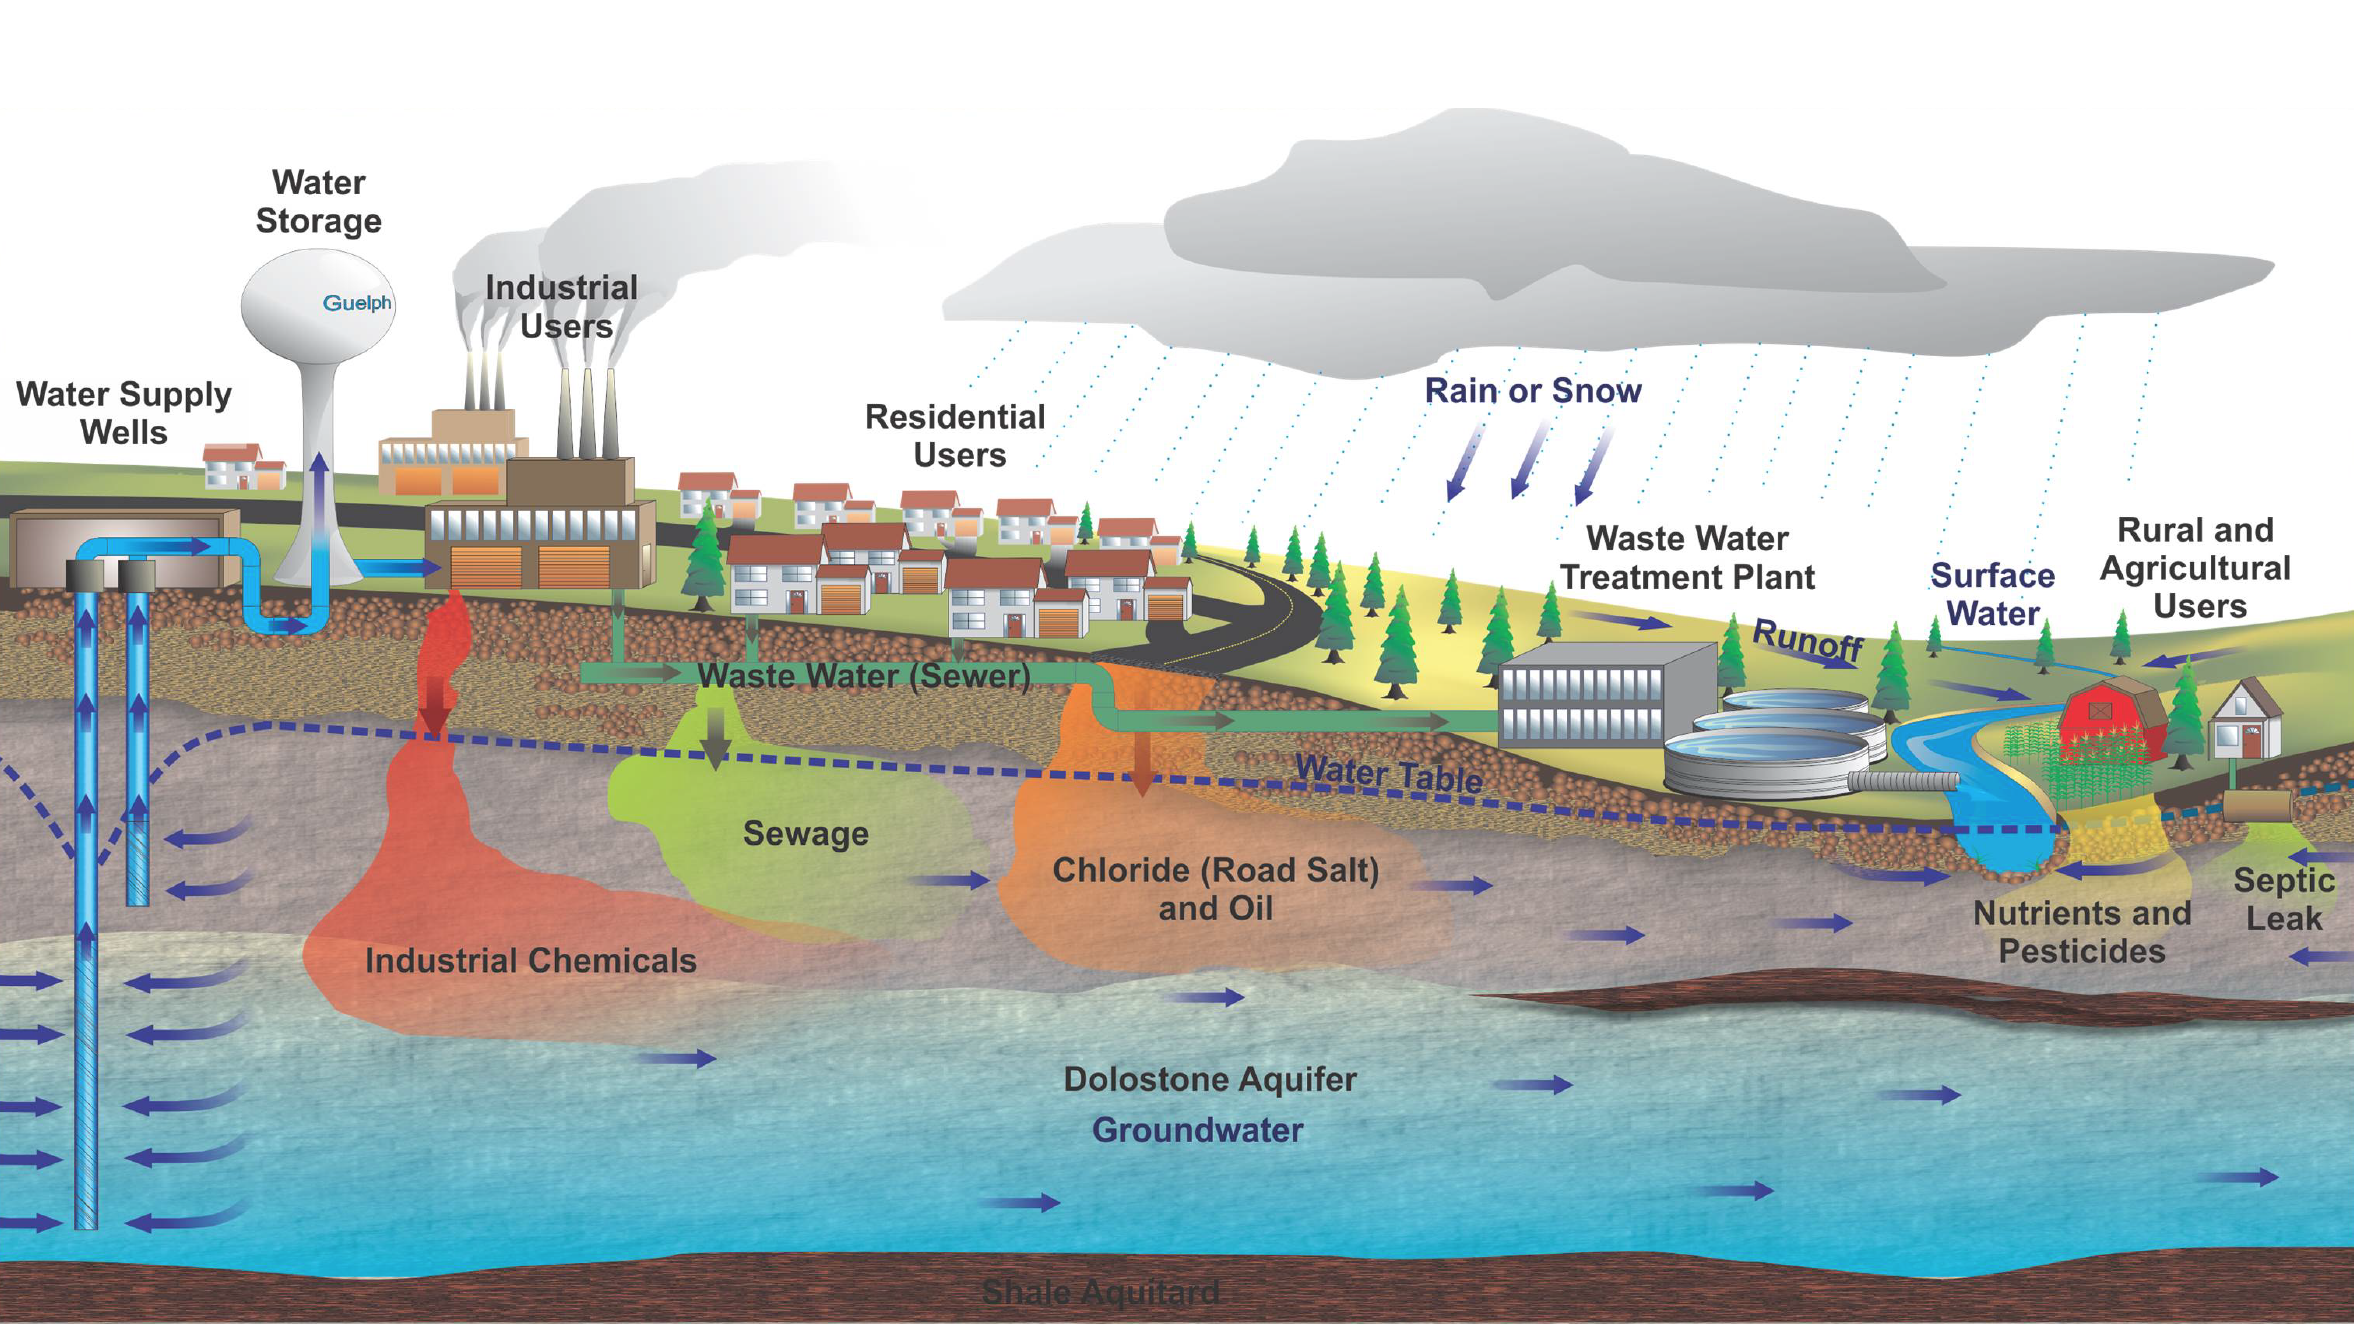 Water cycle diagram with definitions free download wiring diagram gu2076u2070 institute for groundwater research innovative research topics guelph water cycle diagram water cycle illustration water cycle runoff thecheapjerseys Images